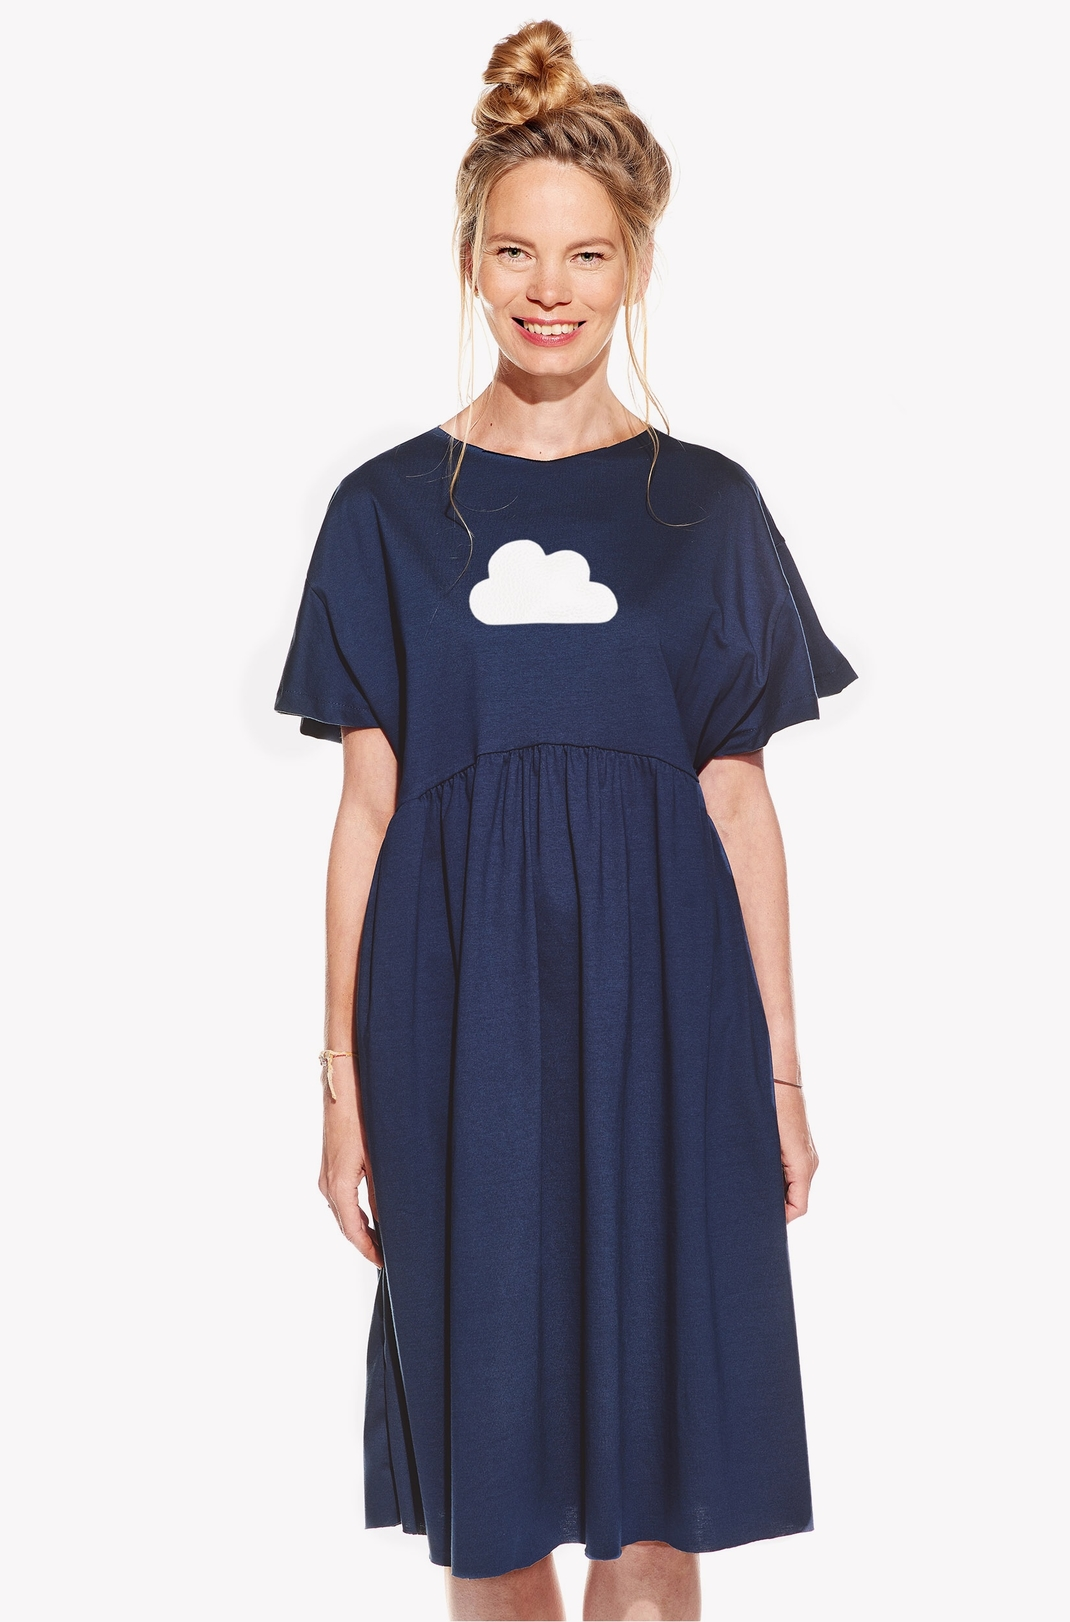 Dresses with cloud